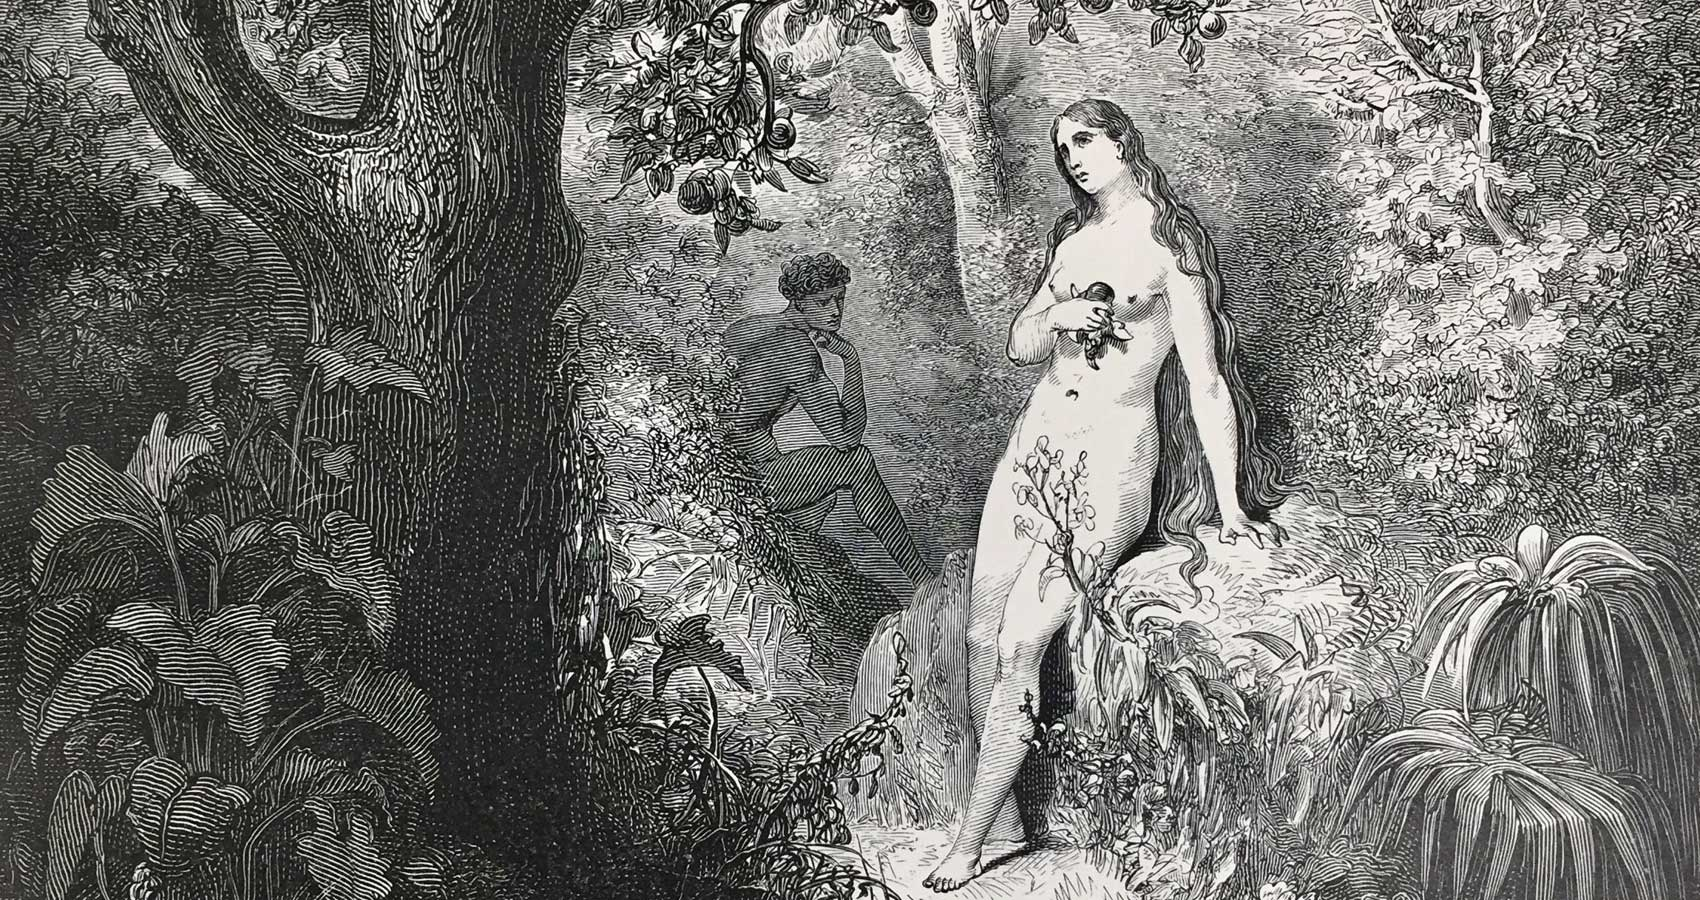 Paradise Lost, poetry written by Lynn White at Spillwords.com